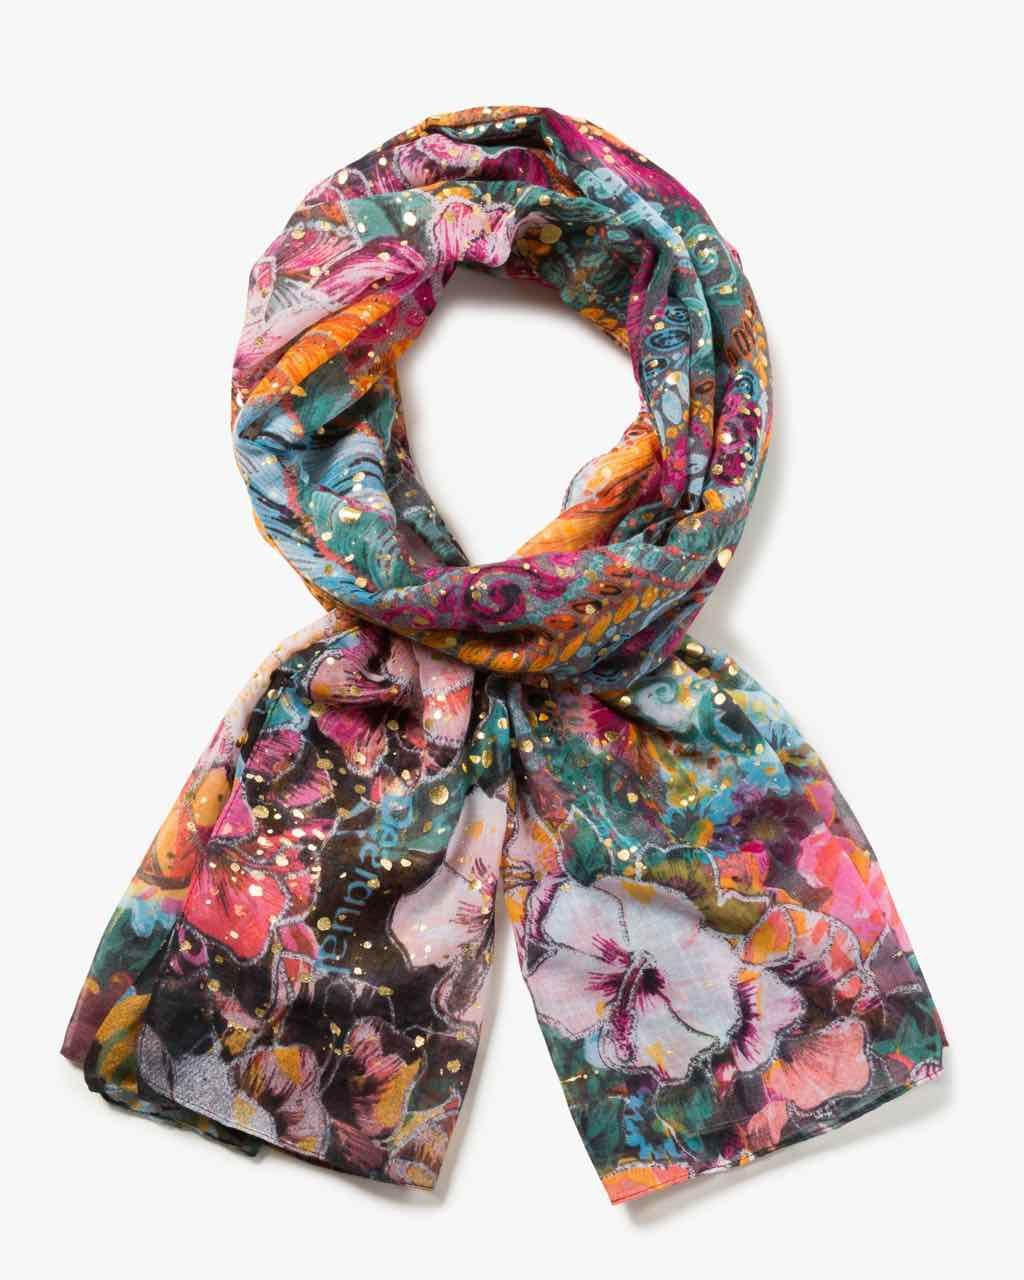 17WAWFA5_3070 Desigual Scarf Rectangle Freya Buy Online